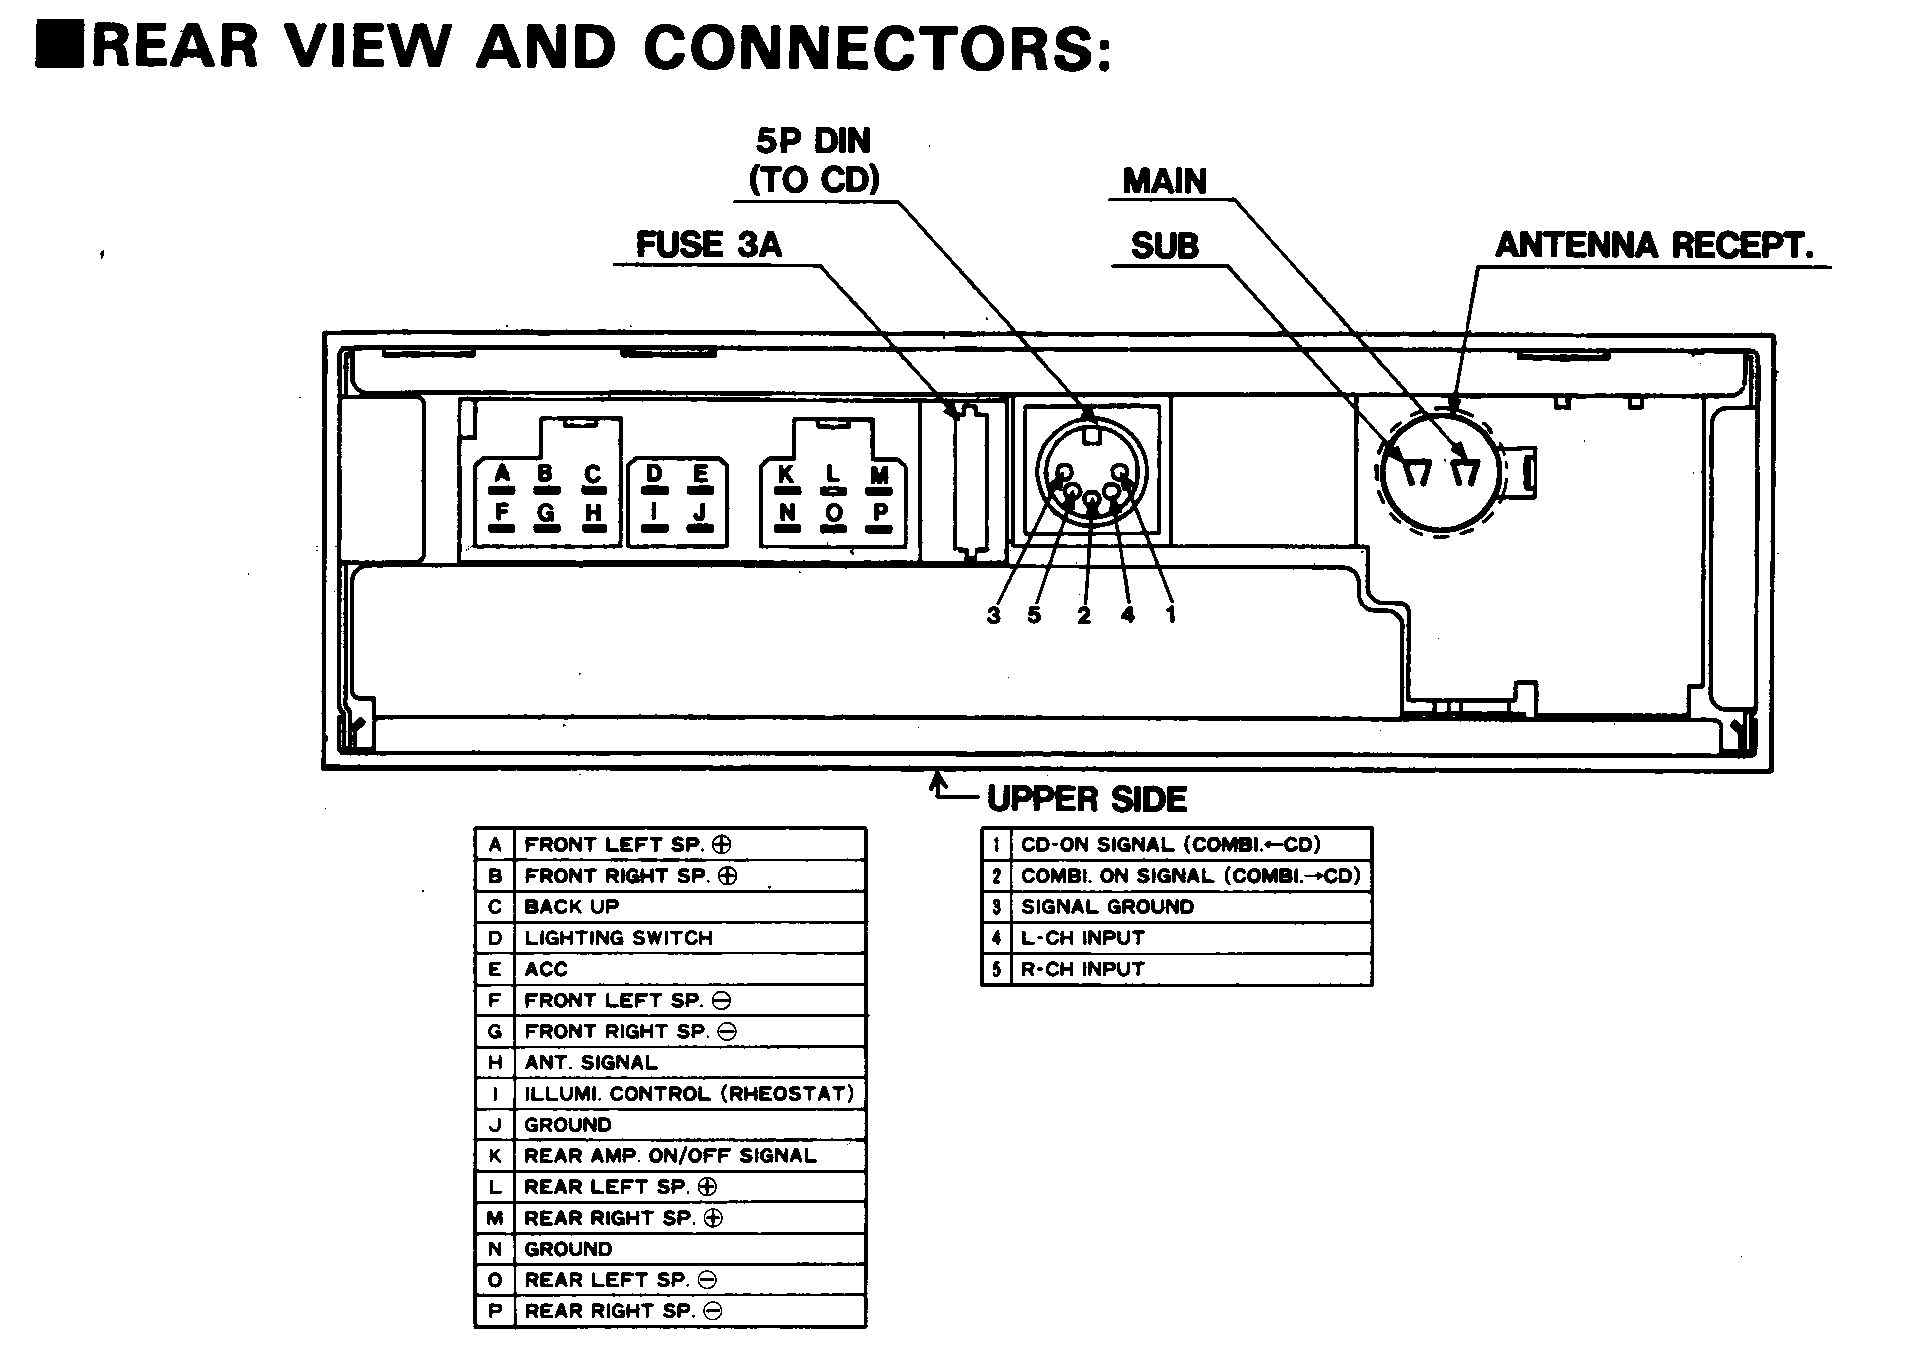 1999 jeep grand cherokee limited radio wiring diagram 2004 ford ranger nissan car stereo audio autoradio connector wire installation schematic ...